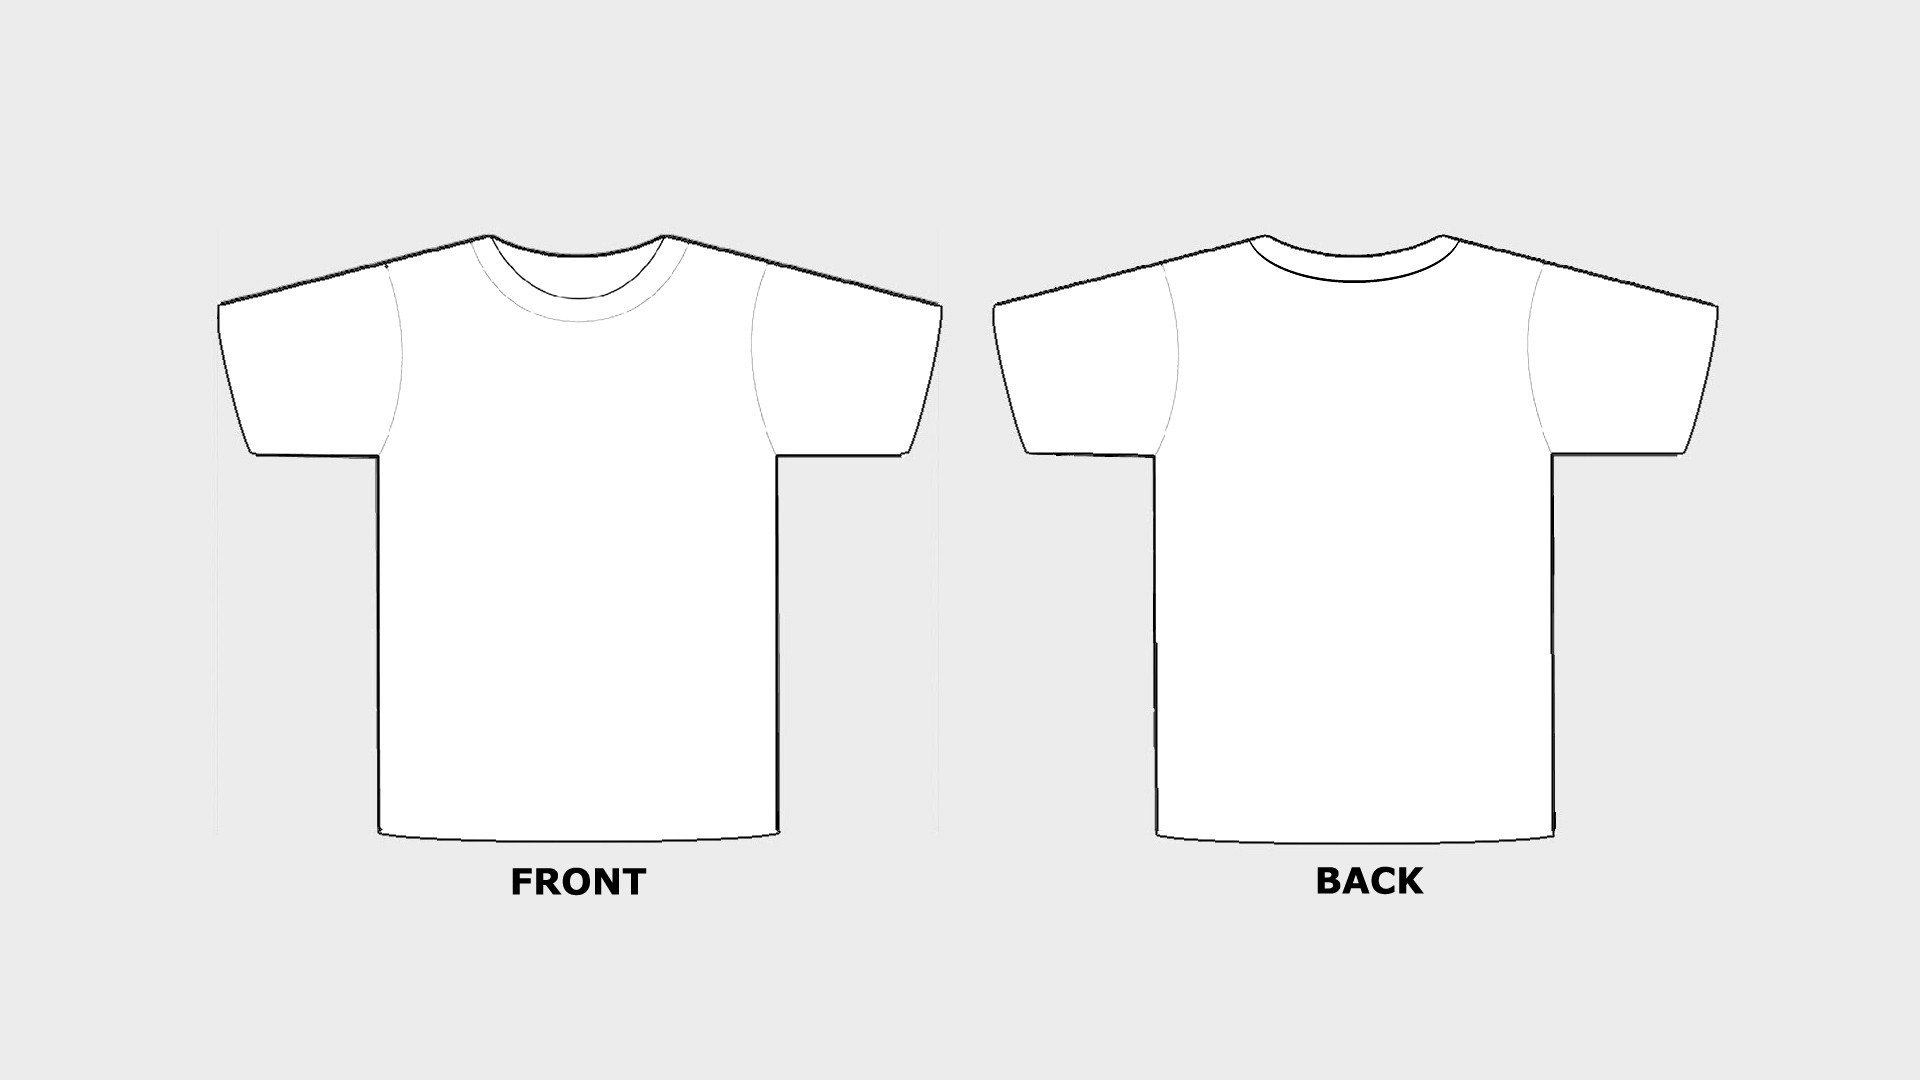 Tee Shirt Design Template Blank Tshirt Template Printable In Hd Hd Wallpapers